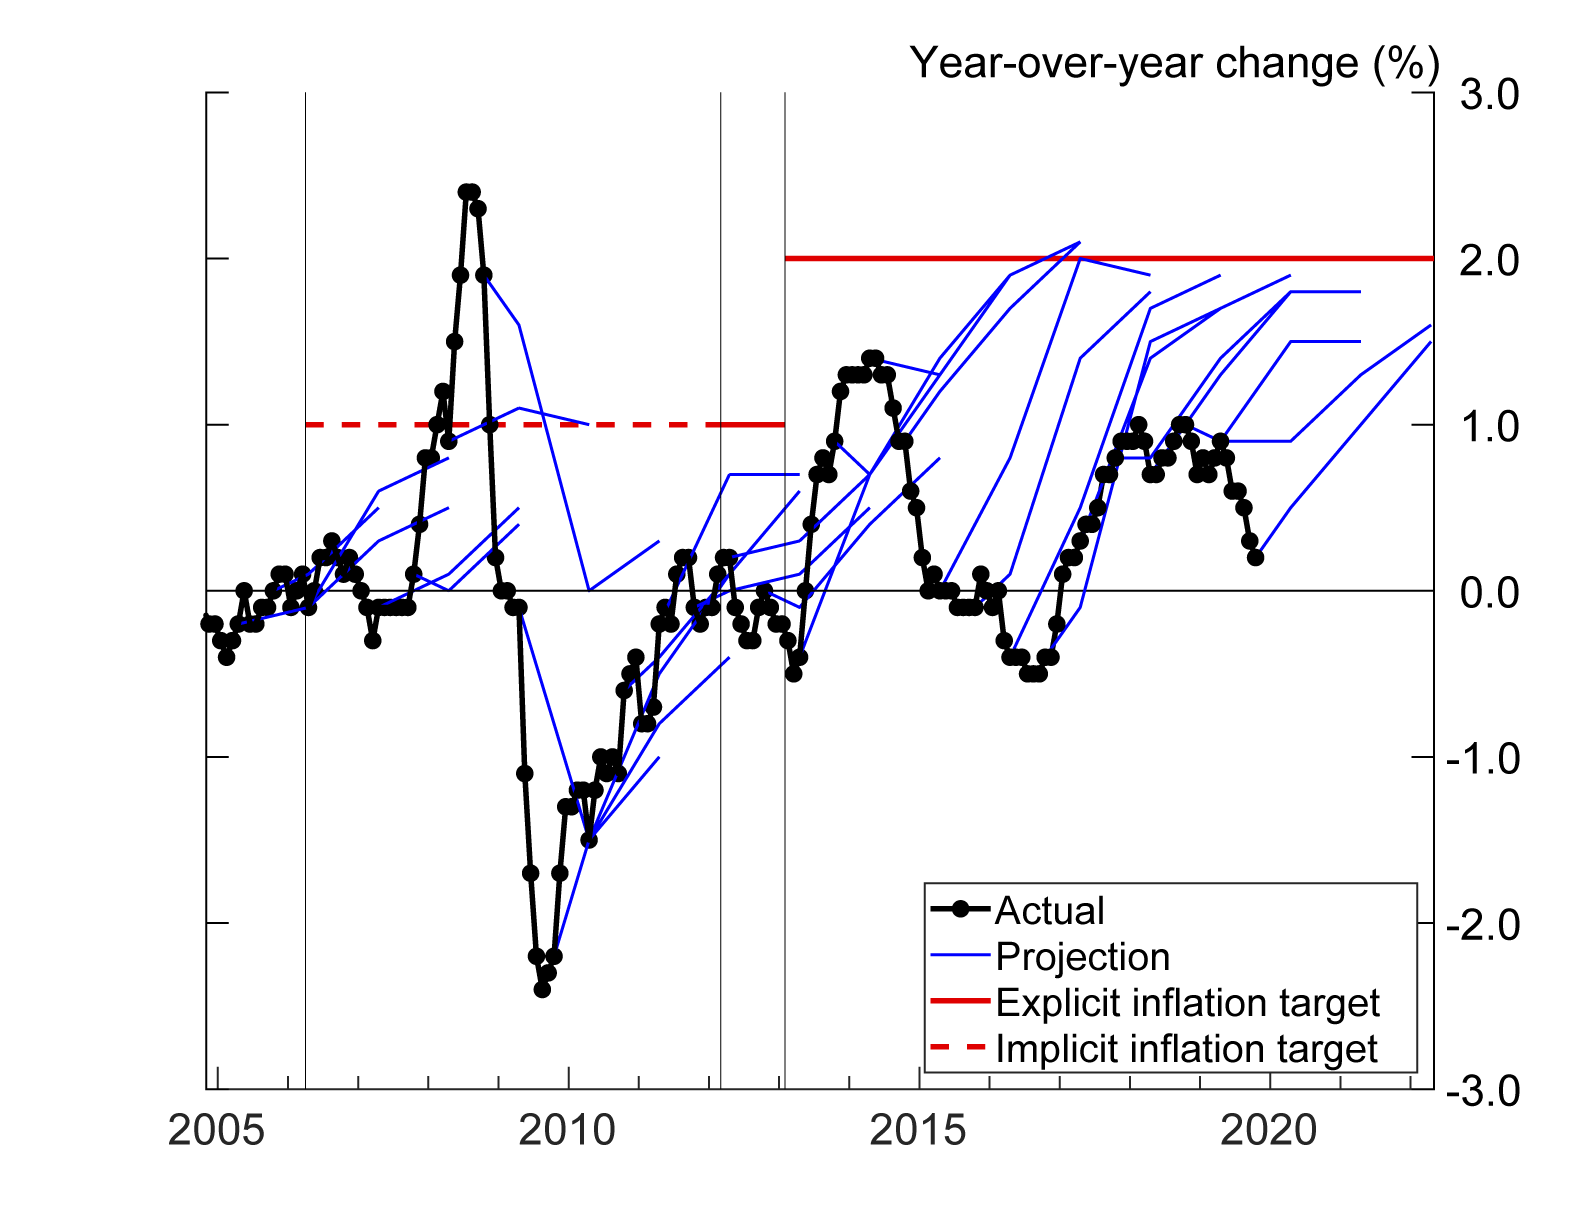 Figure 3. Bank of Japan's inflation projection. See accessible link for data description.